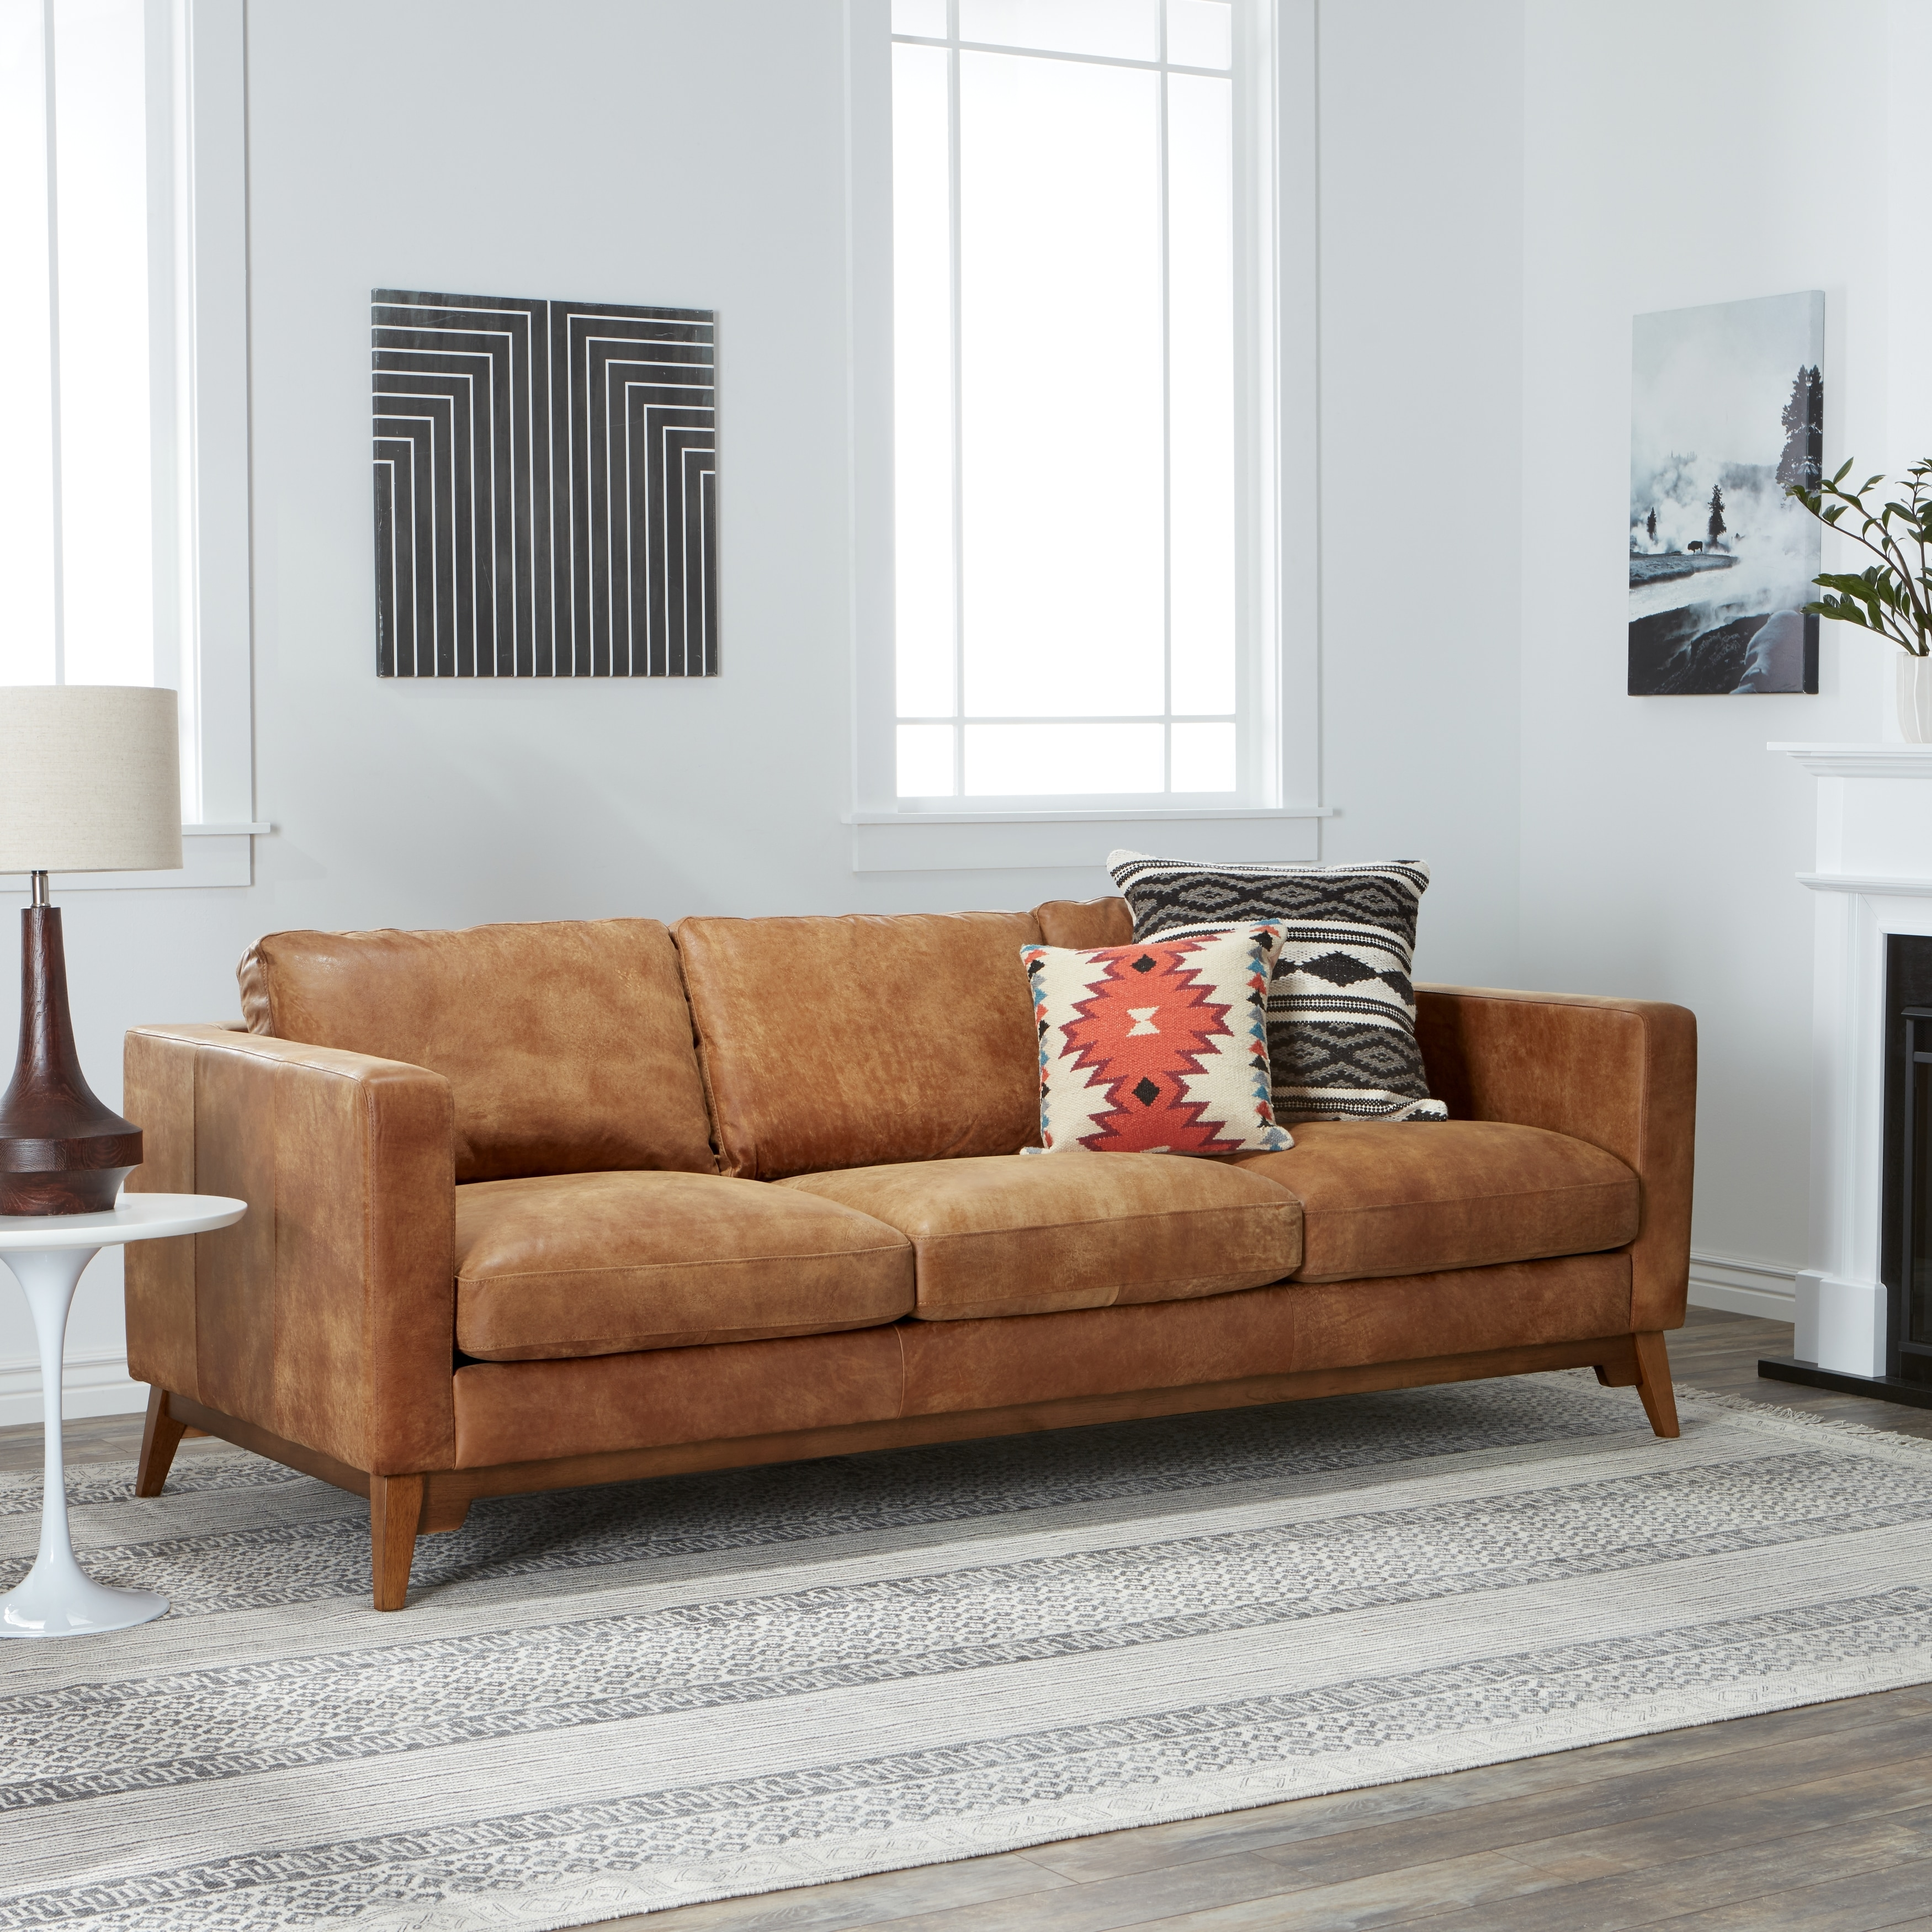 buy sofas couches online at overstock our best living room rh overstock com  overstock.com sectional sofas